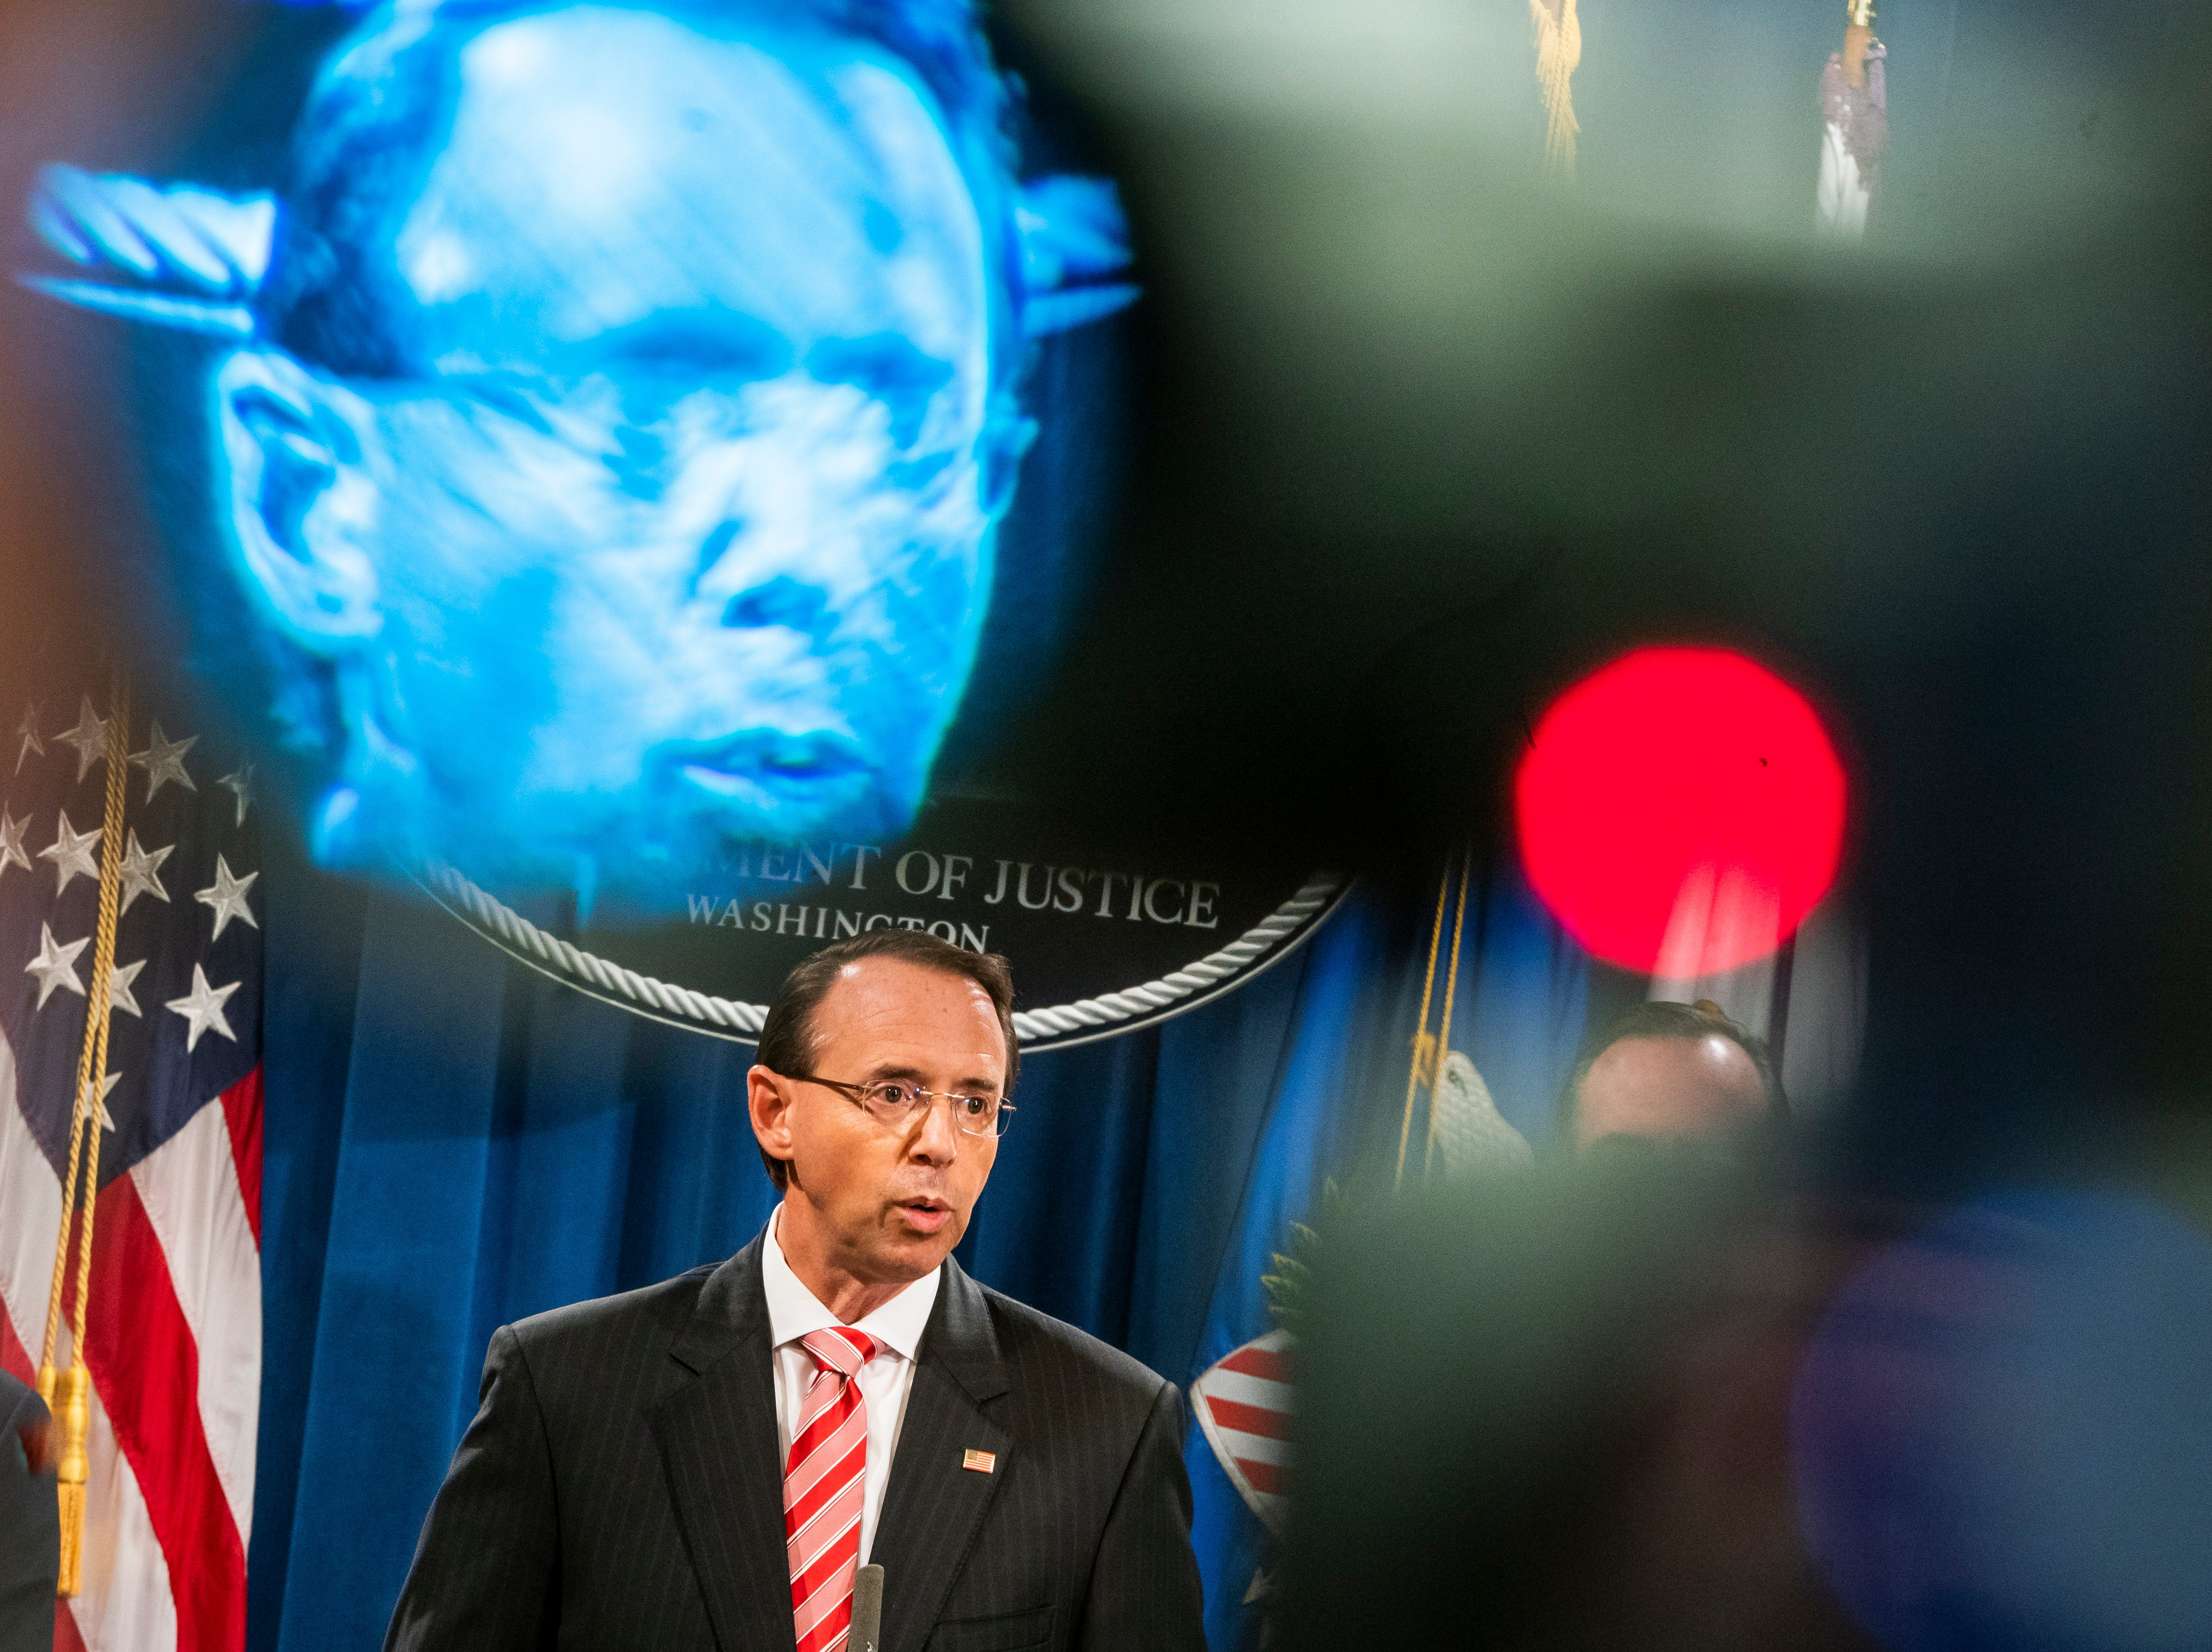 July 13, 2018: Deputy Attorney General Rod Rosenstein is seen in the viewfinder of a television camera as he announces that the Justice Department is indicting 12 Russian military officers for hacking Democratic emails during the 2016 presidential election at the Justice Department in Washington. The Russians involved were working for the military intelligence service GRU, according to Rosenstein.